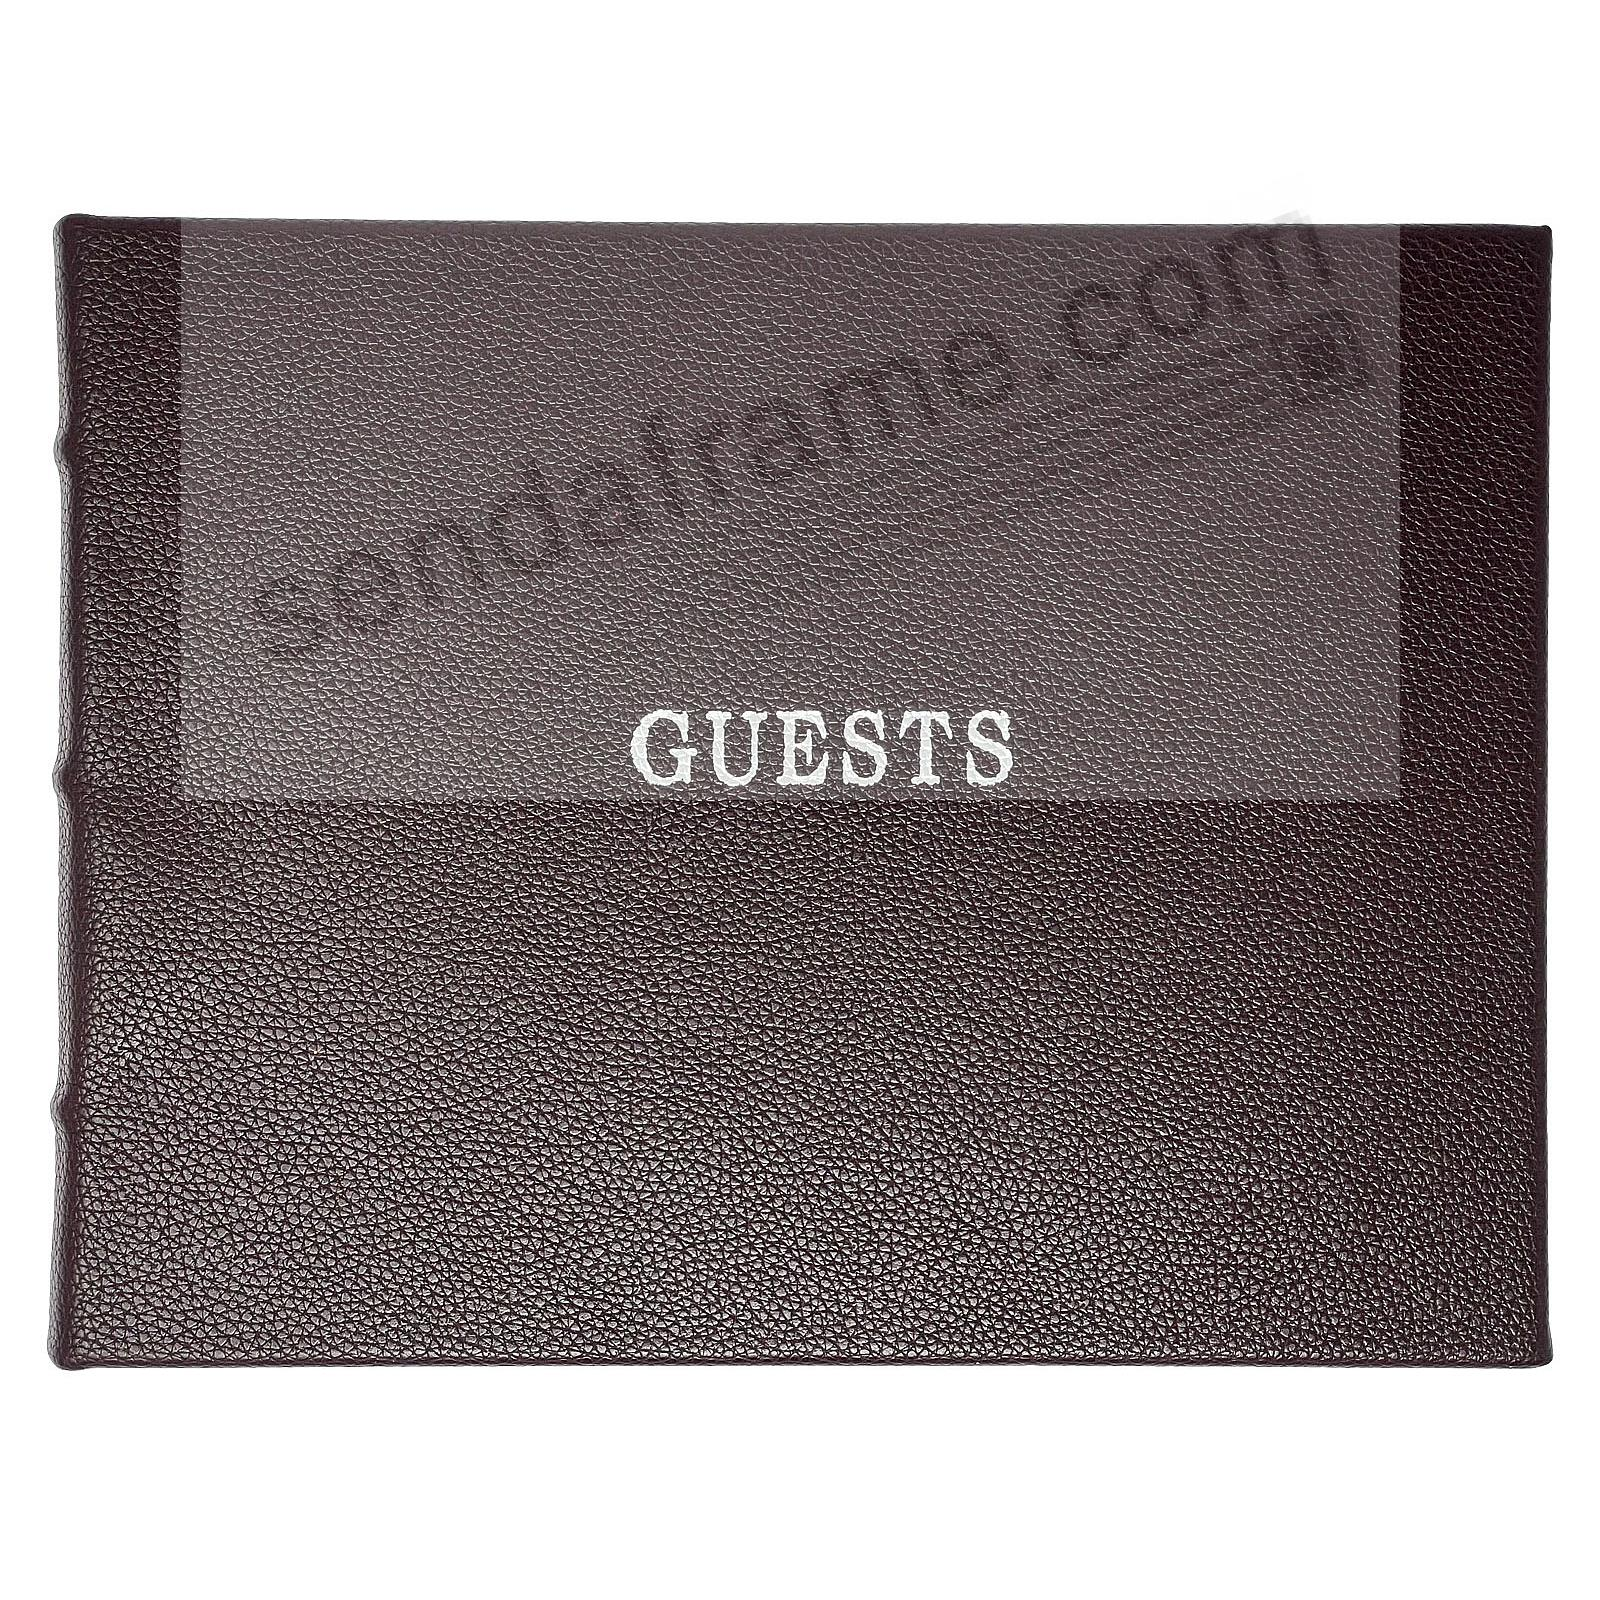 Rustico-Brown eco-leather Guest Book for a lasting record by Graphic Image®